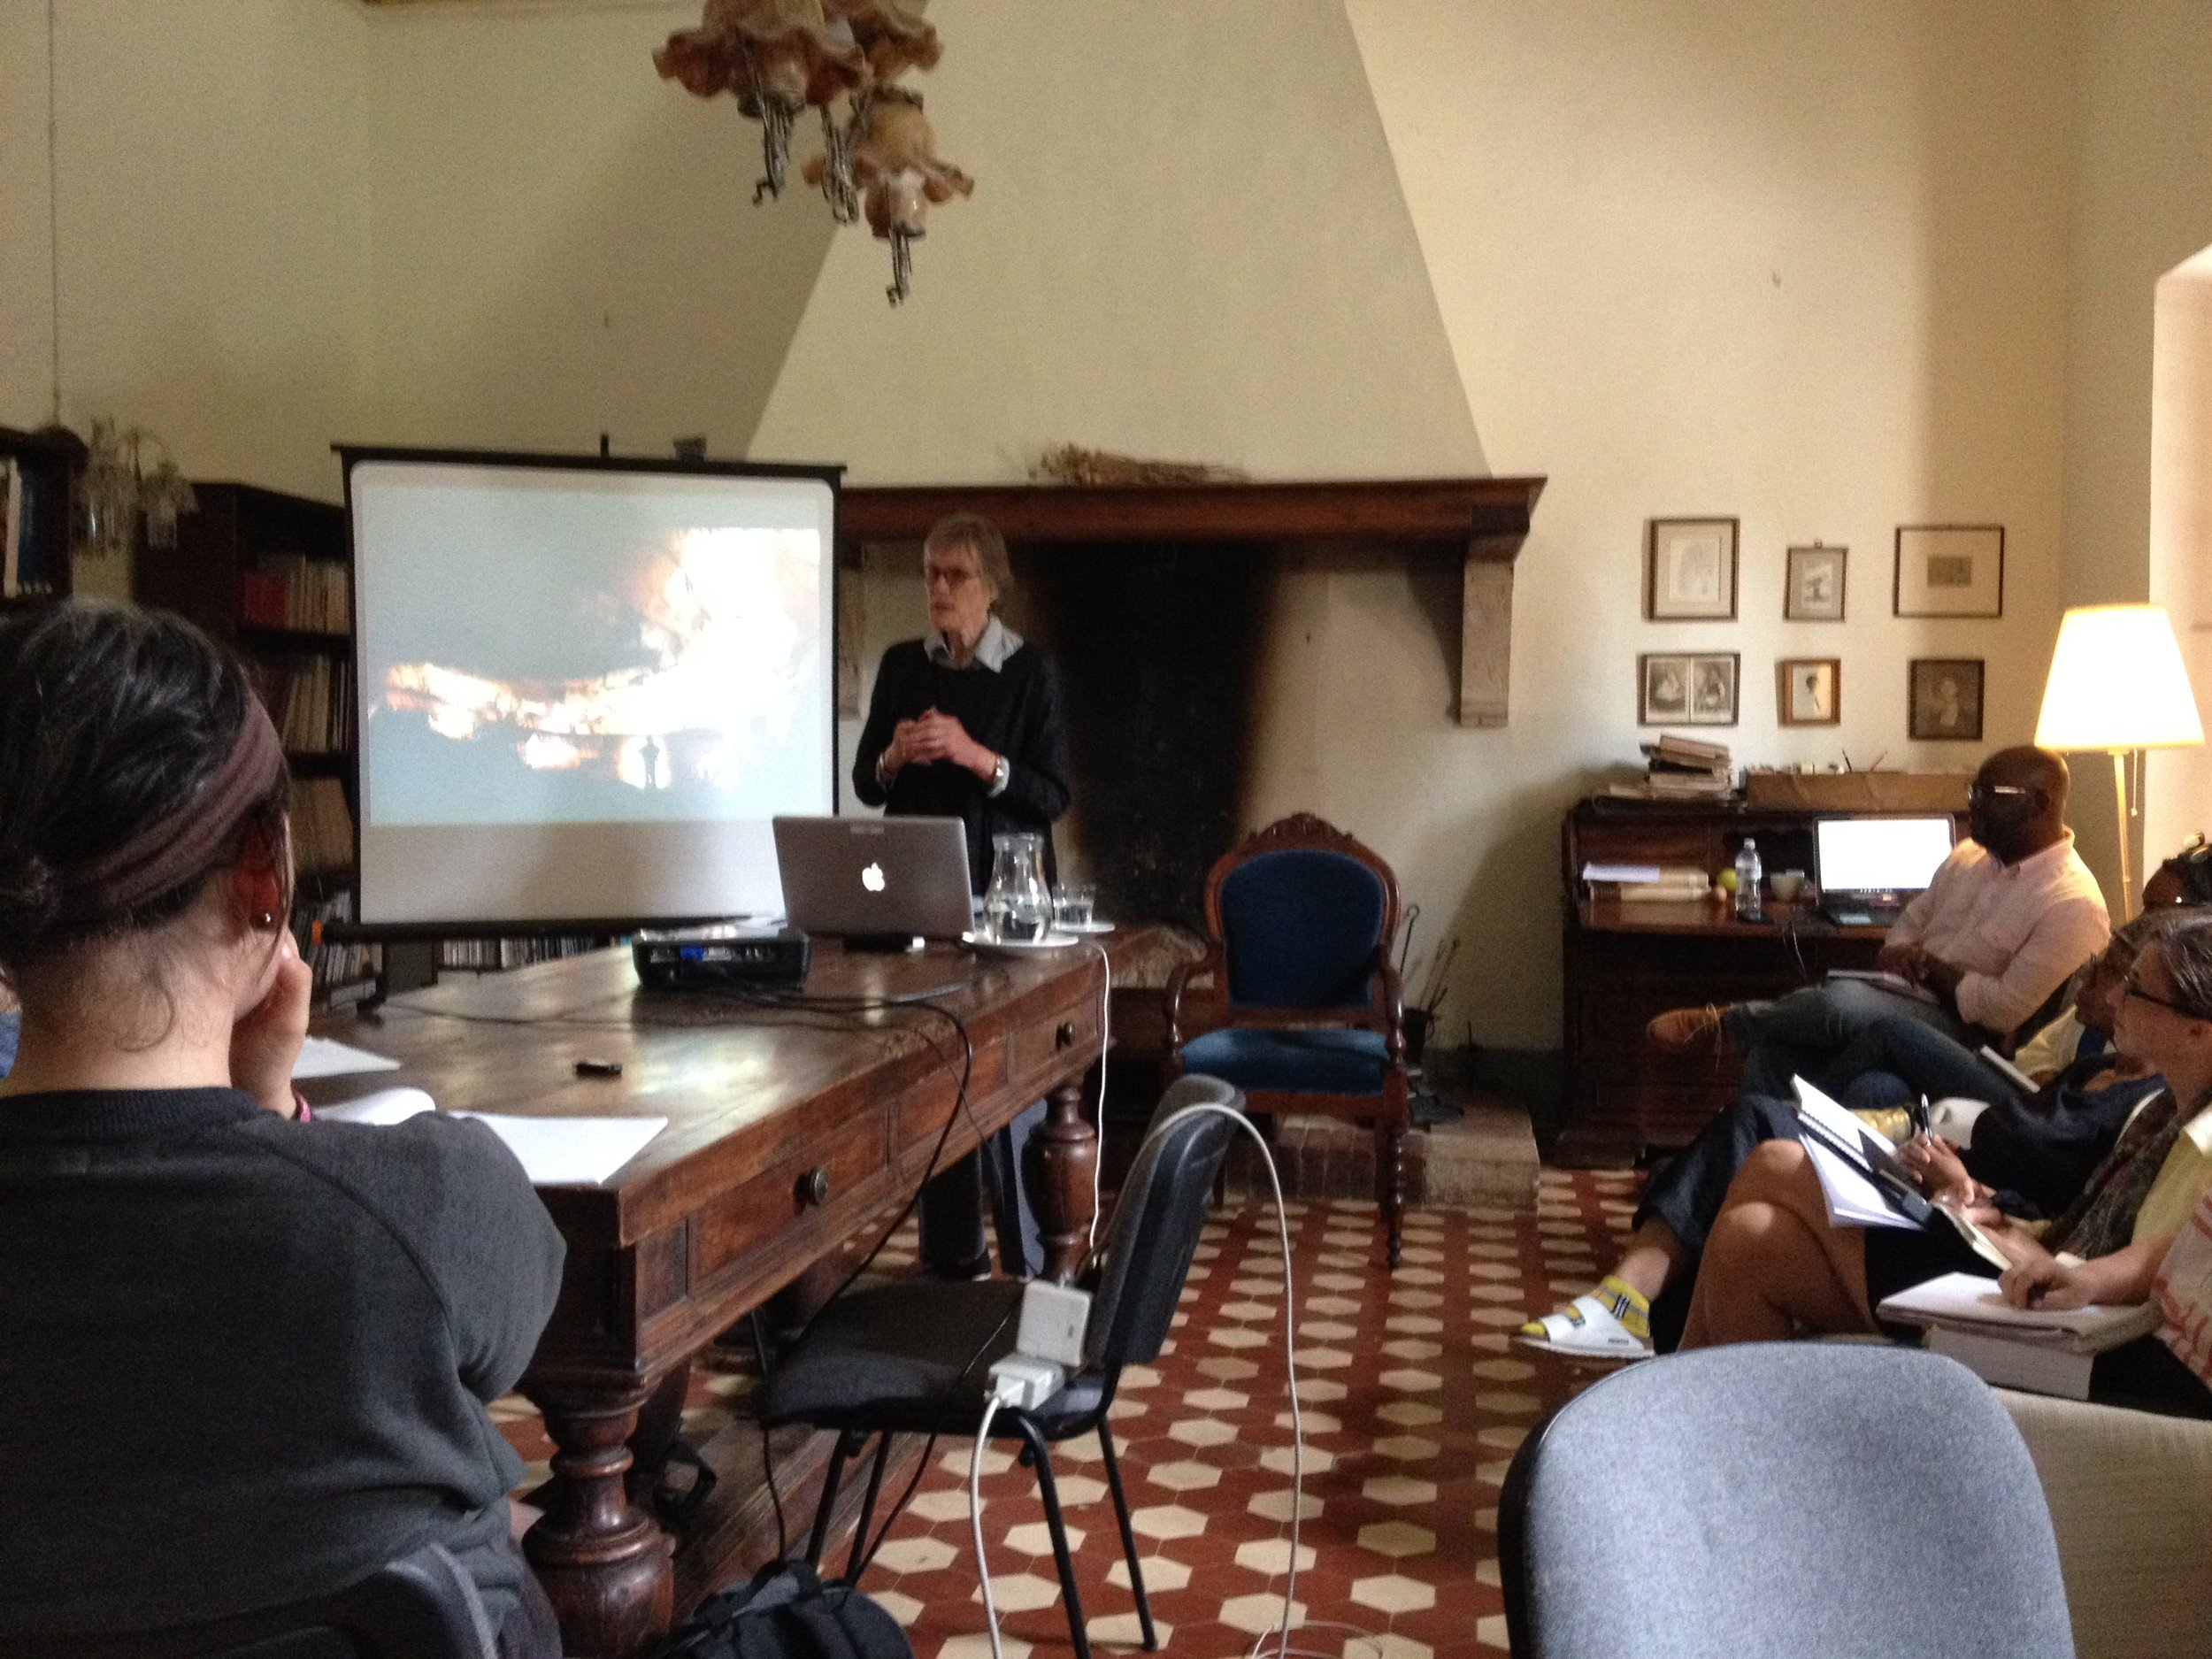 Alison Hildreth discussing her work with IDSVA students at Spannocchia. Photo by Simonetta Moro